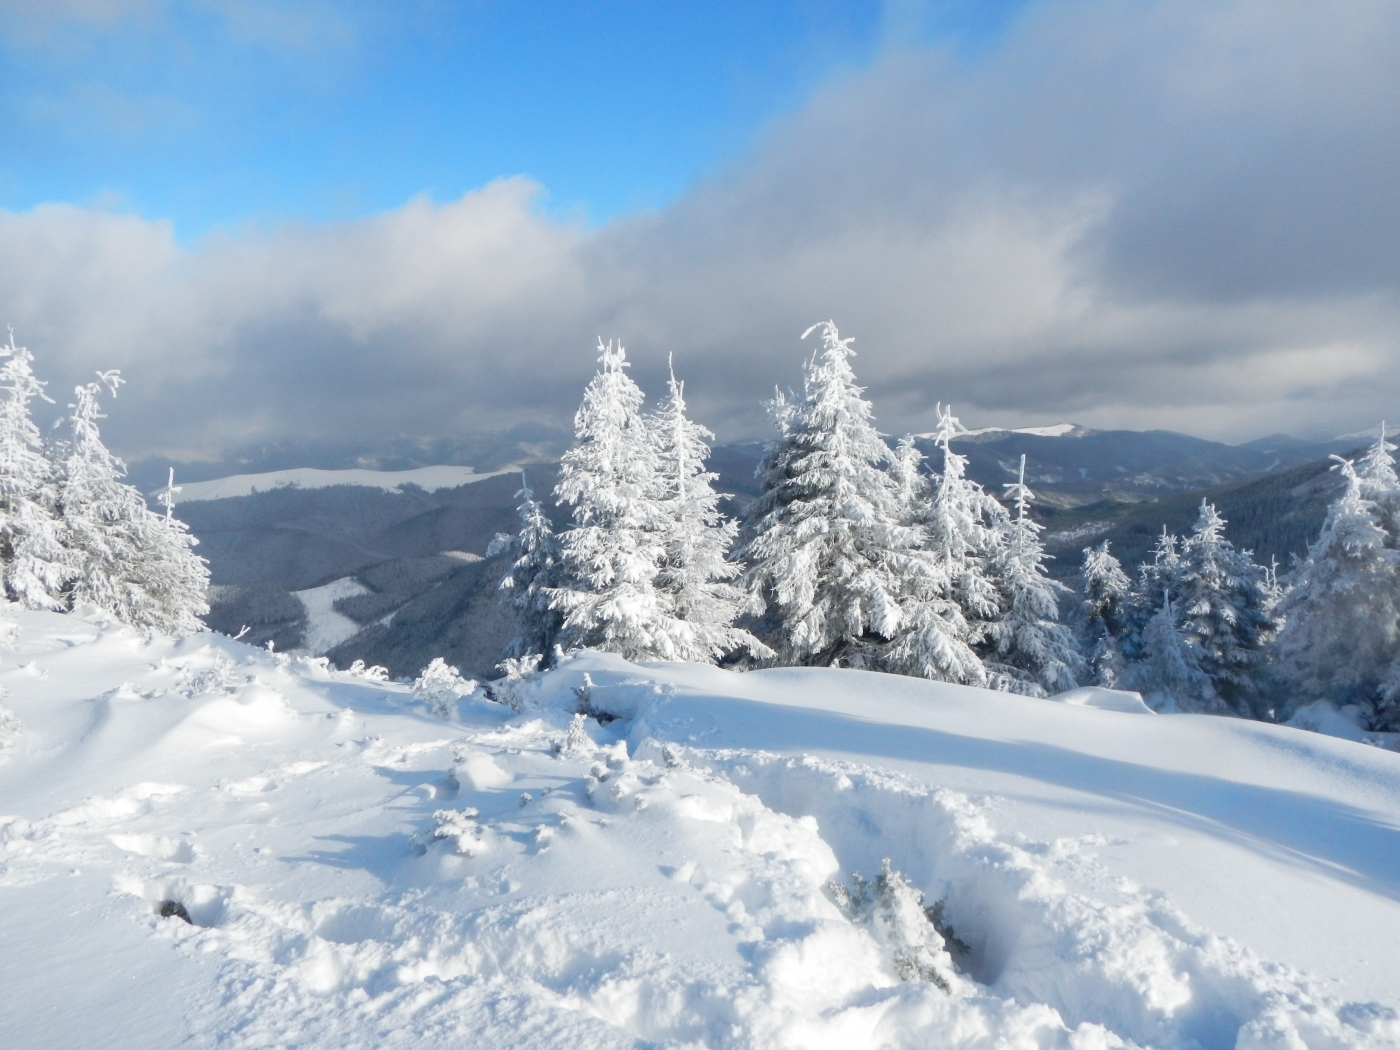 44687 download wallpaper Landscape, Winter, Nature, Snow screensavers and pictures for free